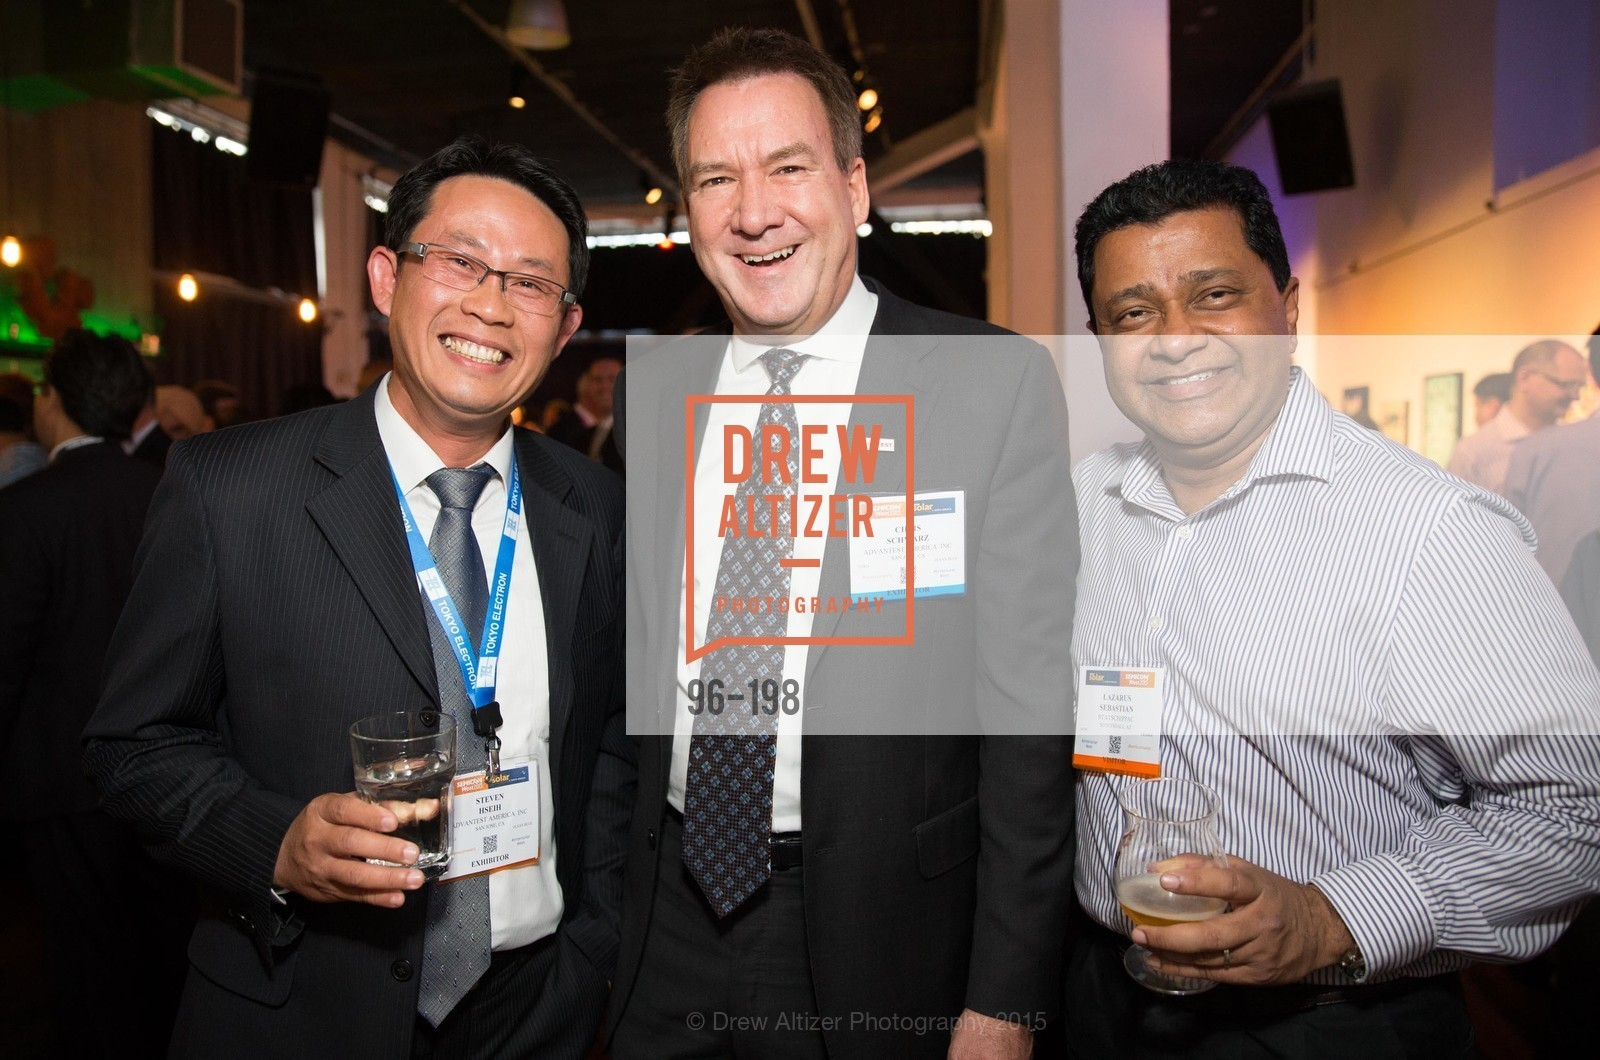 Extras, Advantest Presents Annual SEMICON/West Reception, July 15th, 2015, Photo,Drew Altizer, Drew Altizer Photography, full-service event agency, private events, San Francisco photographer, photographer California